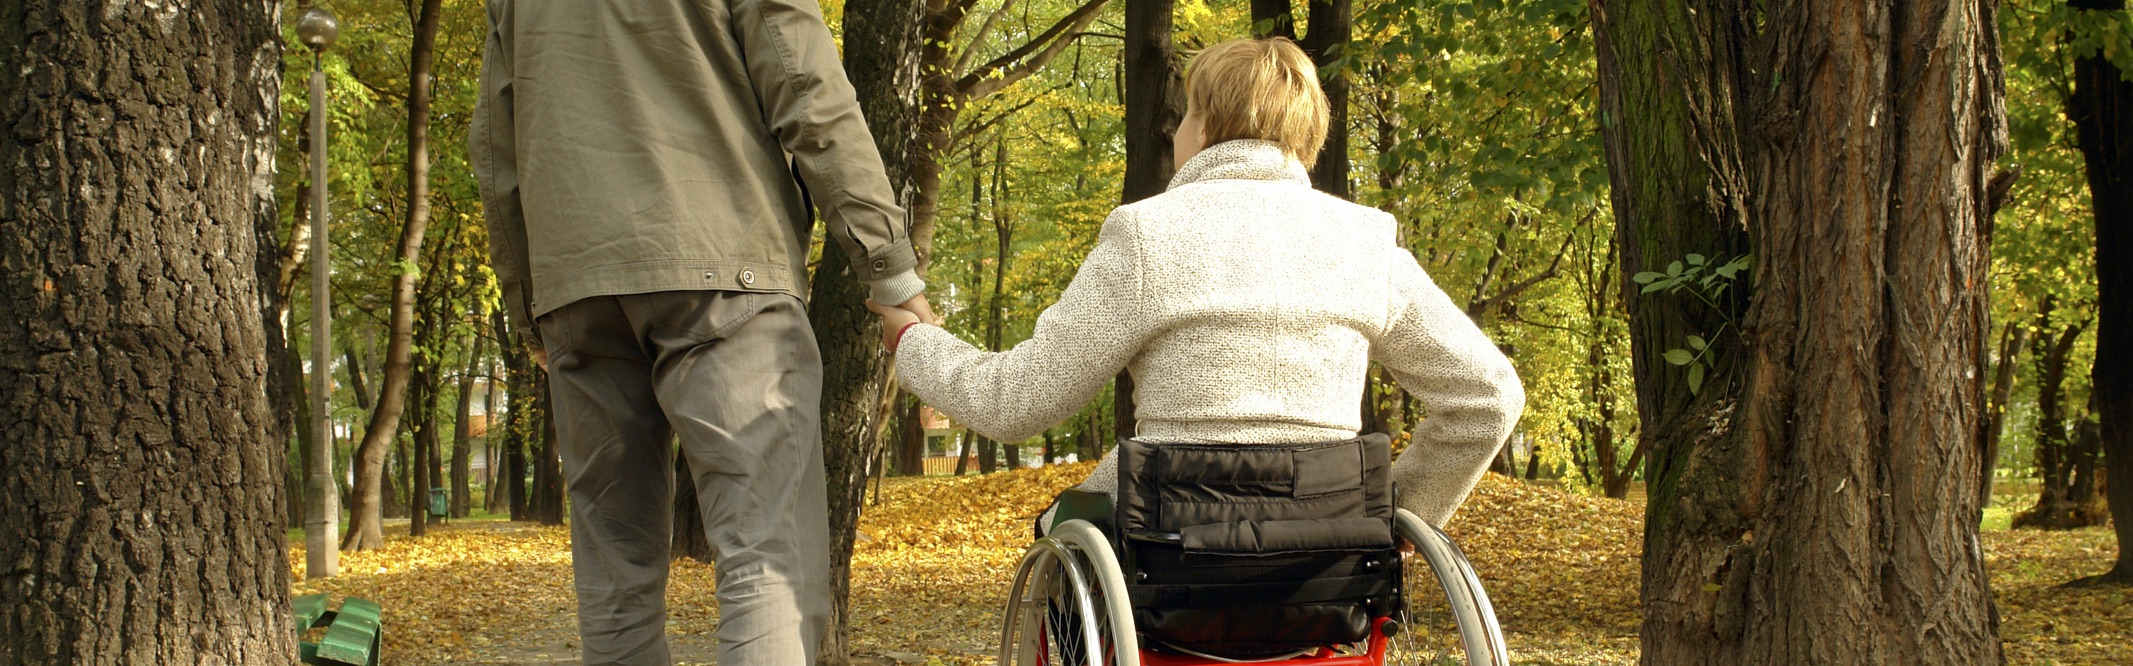 Back view of man holding hands with lady in a wheelchair